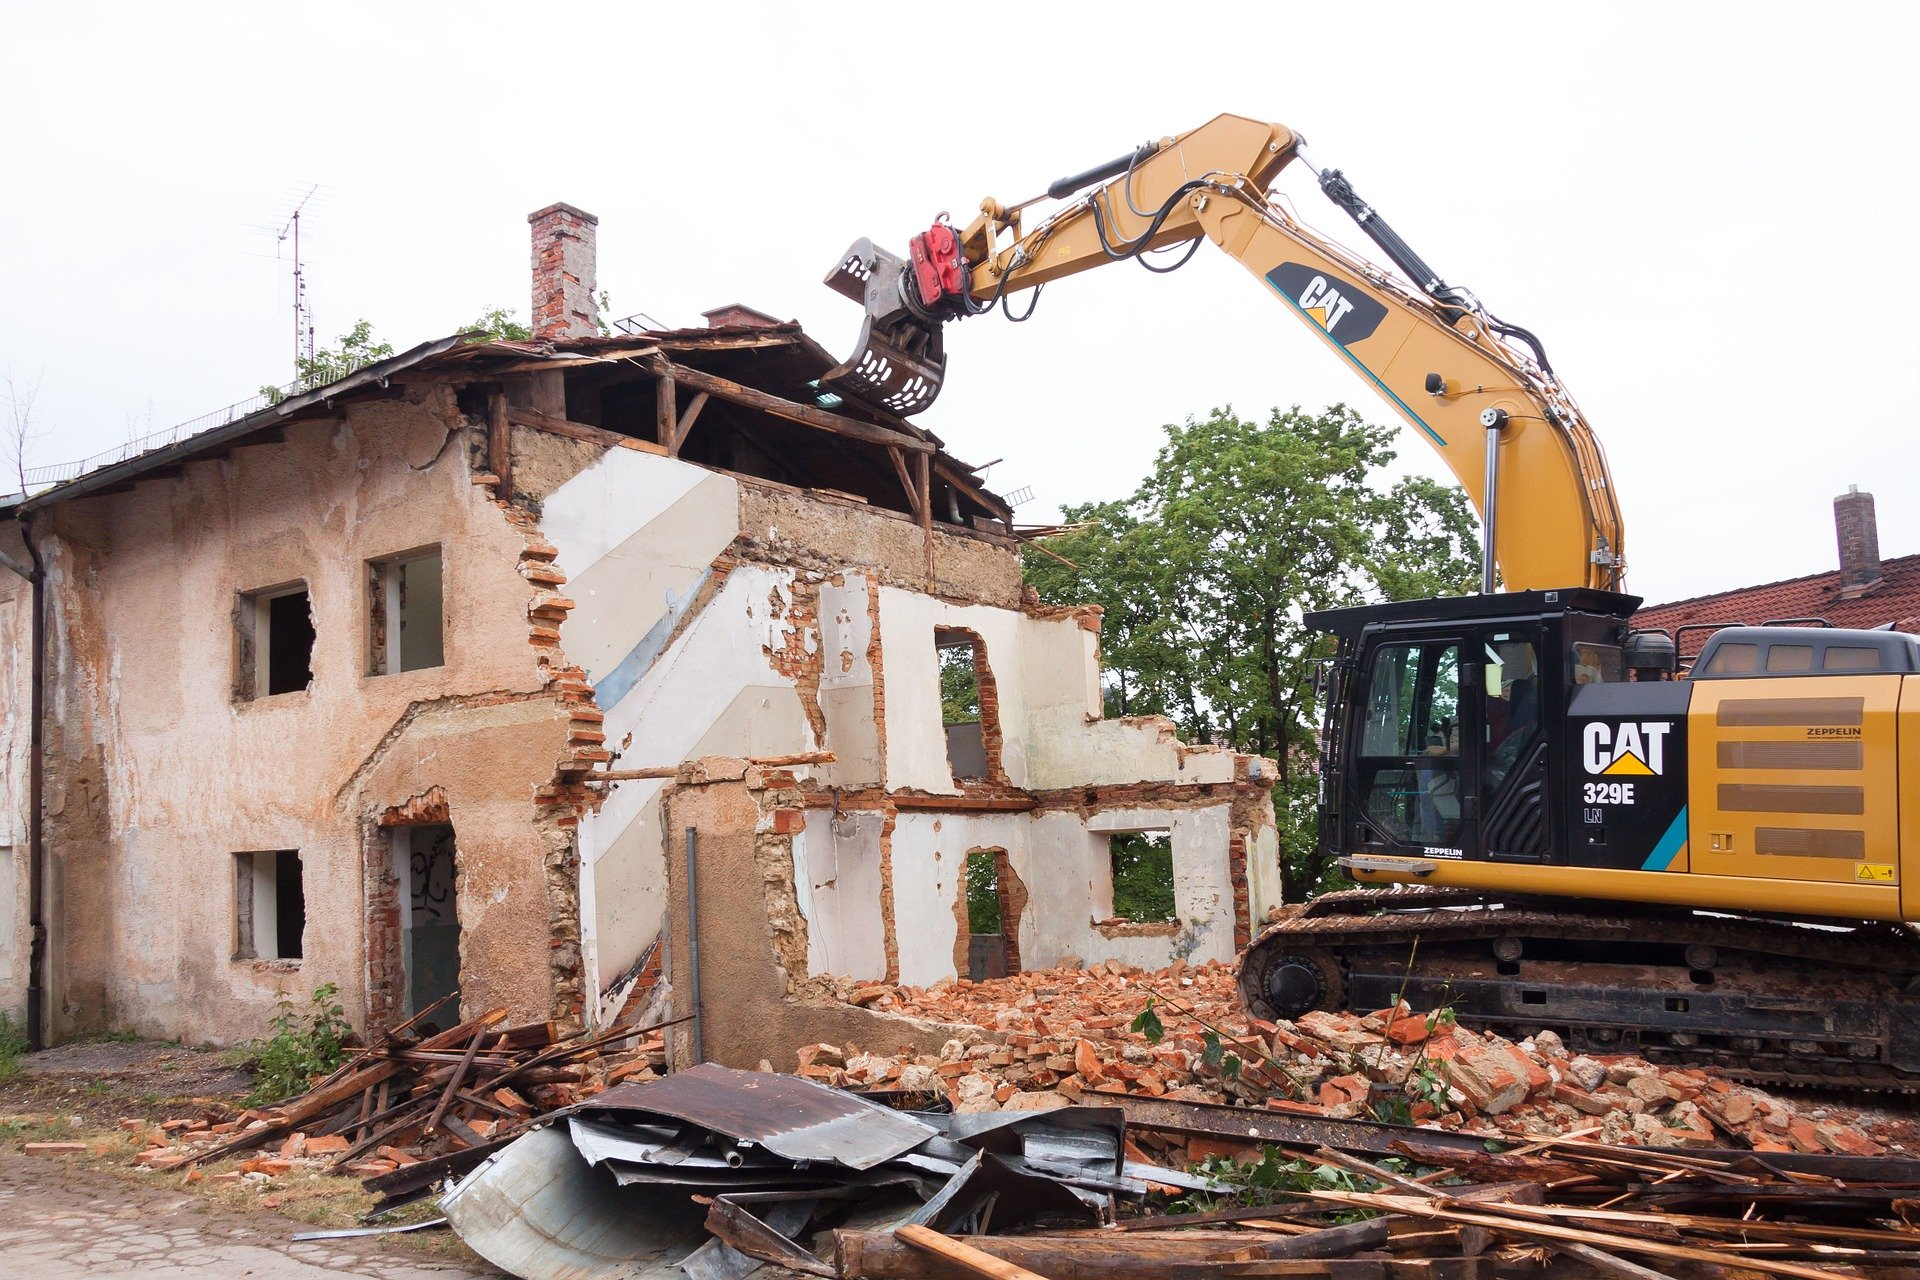 Let demolition experts help with your project